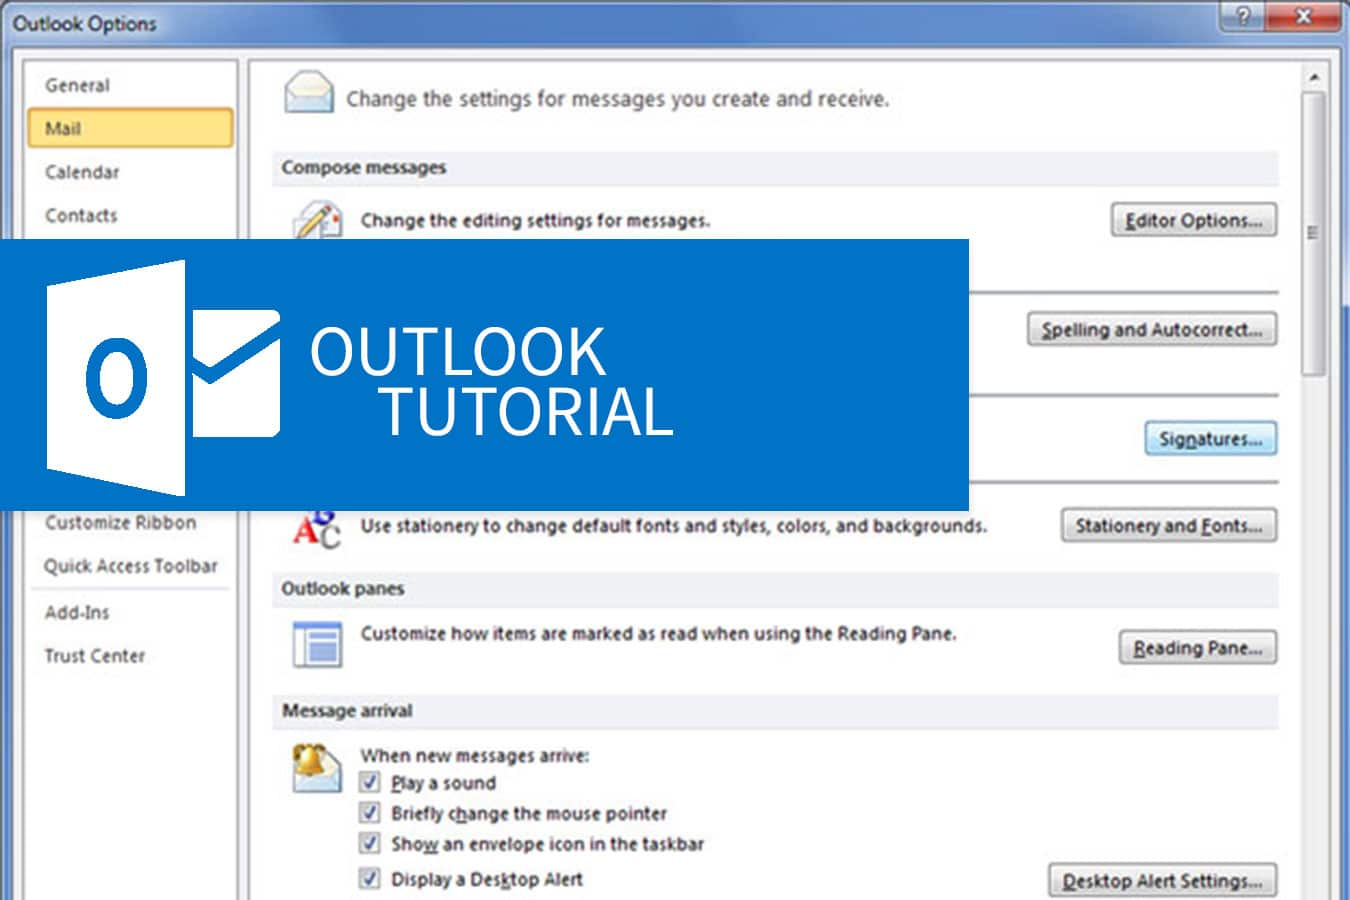 allocate-specific-email-signature-to-outlook-image-0